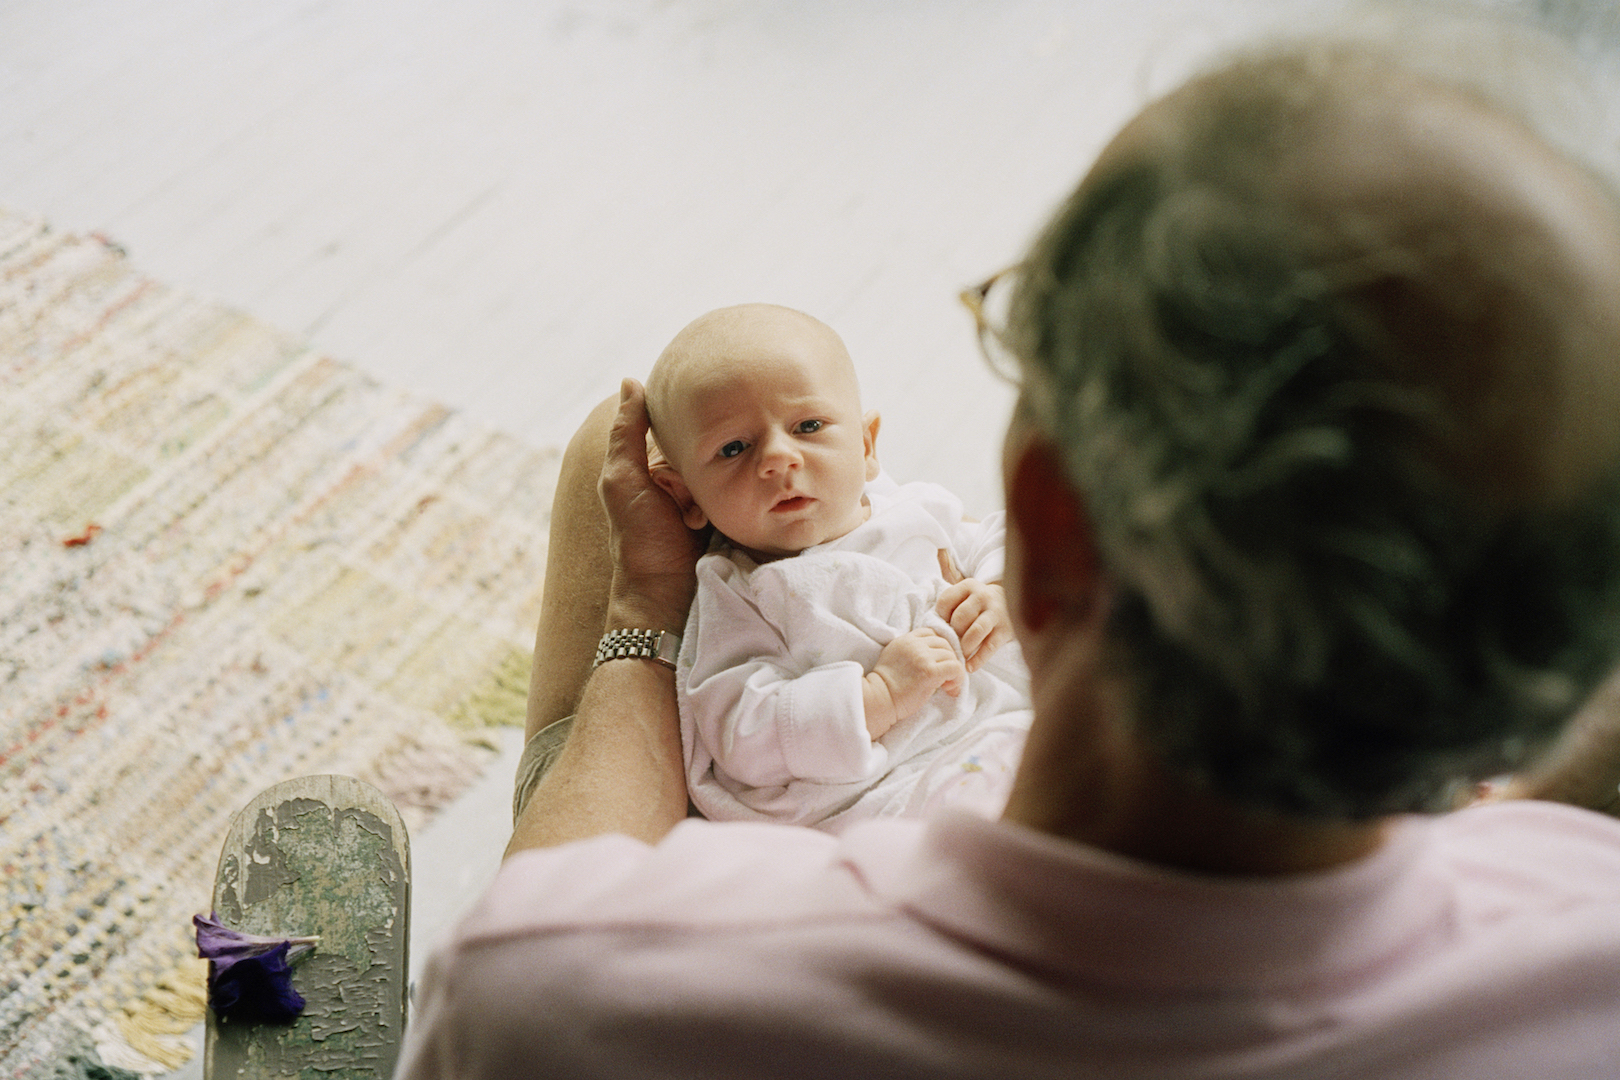 Older fathers put health of partners, unborn children at risk